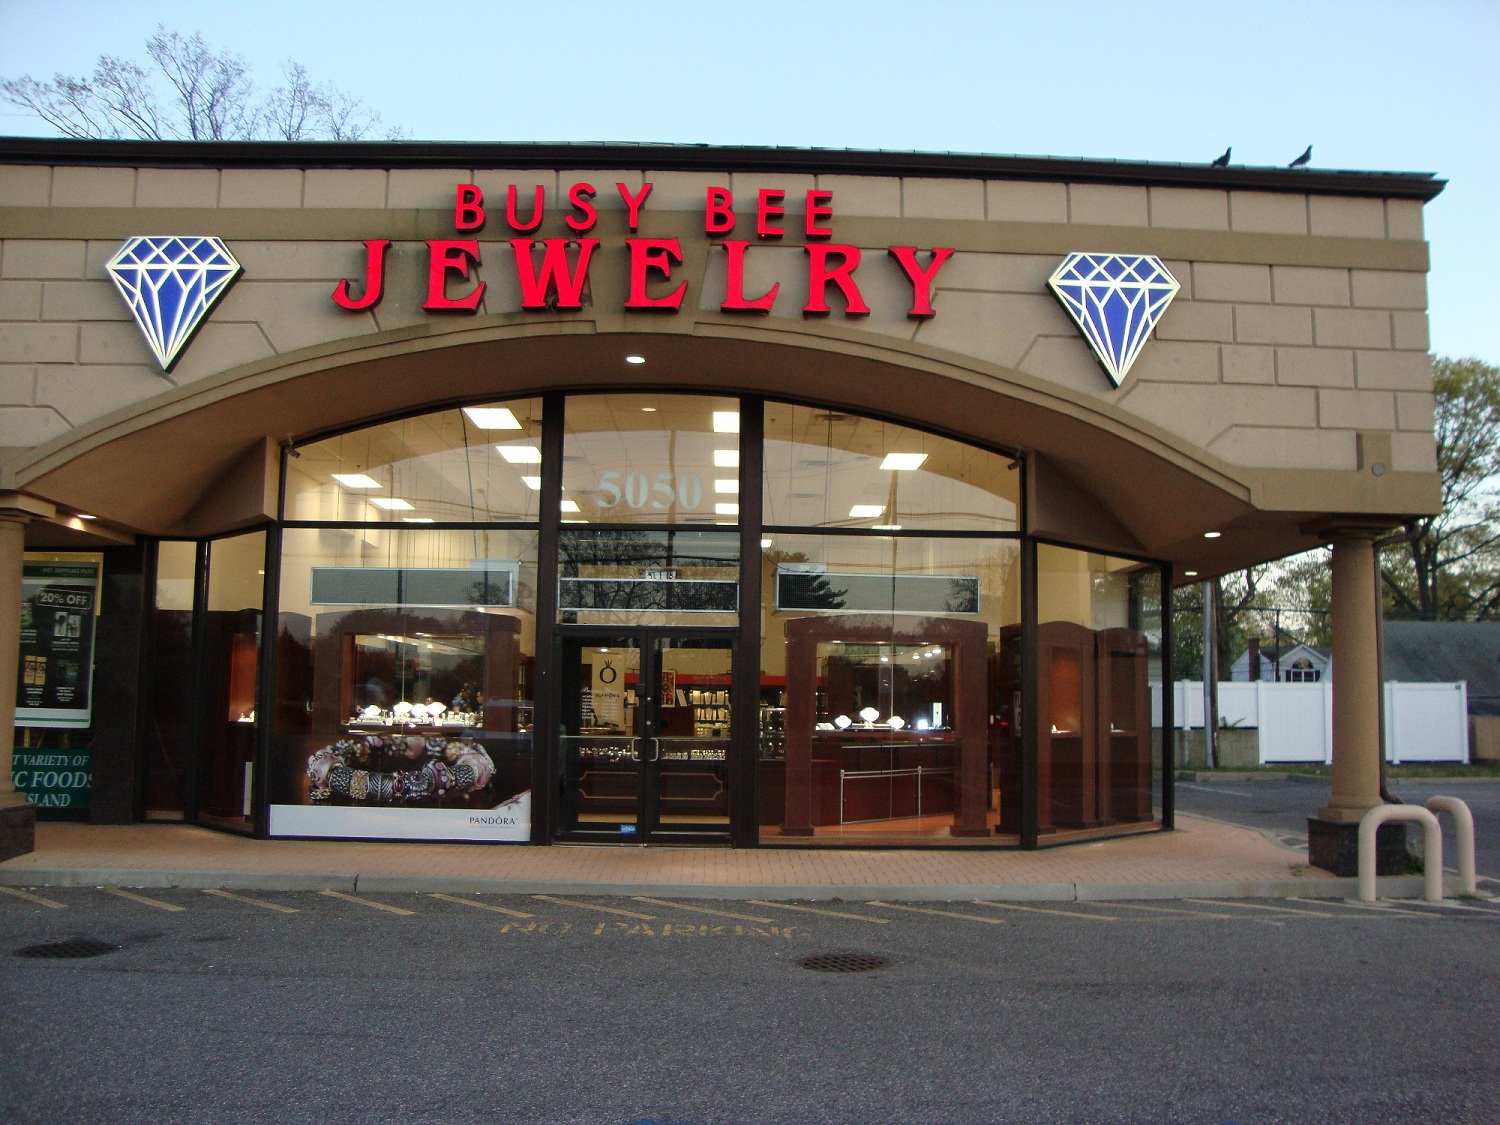 Busy Bee Jewelry chose a more traditional design, with all glass front. The massive red logo is very eye-catching and see-through glass walls are more inviting.